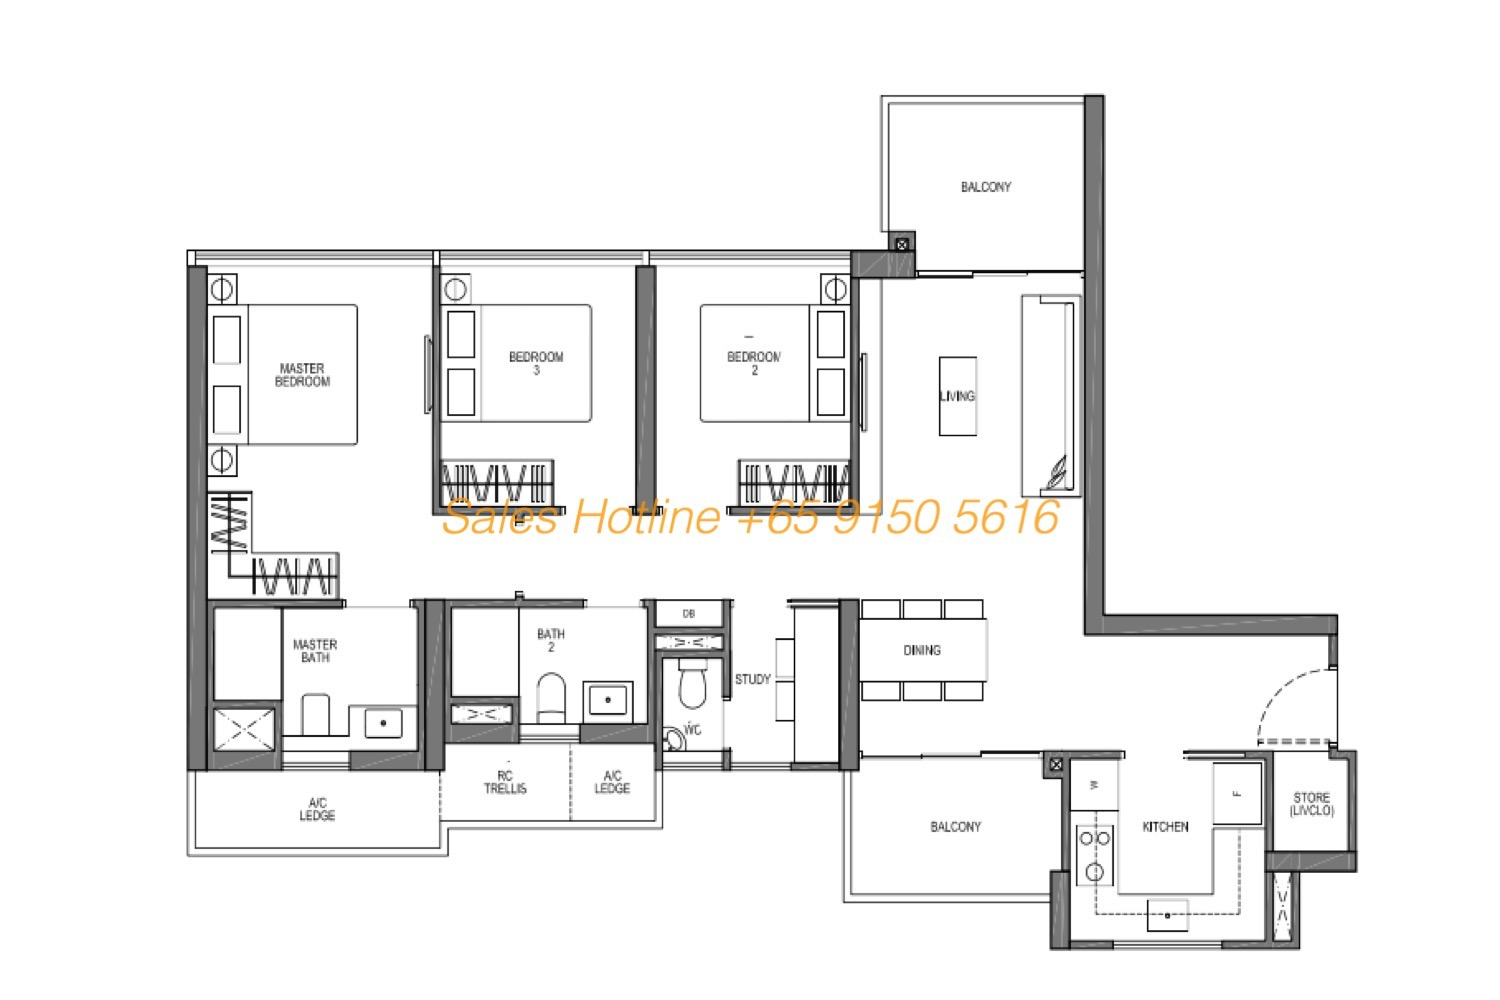 Seaside Residences Floor Plan - Vantage